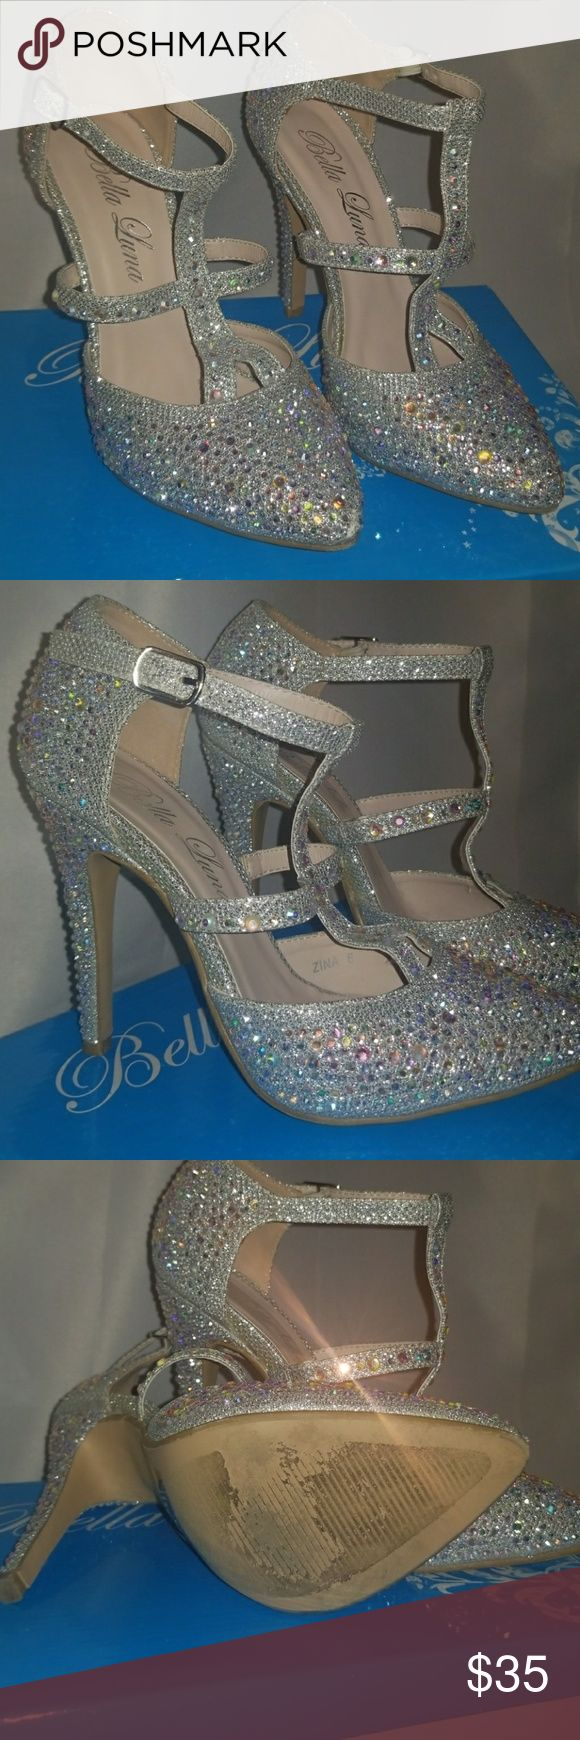 💎 Holographic Jeweled Heel Worn Once!! 💎 Silver shoe with holographic jewels all over! Only worn one time for a special occasion. Minor damage to the front of the right shoe. Bella Luna Shoes Heels